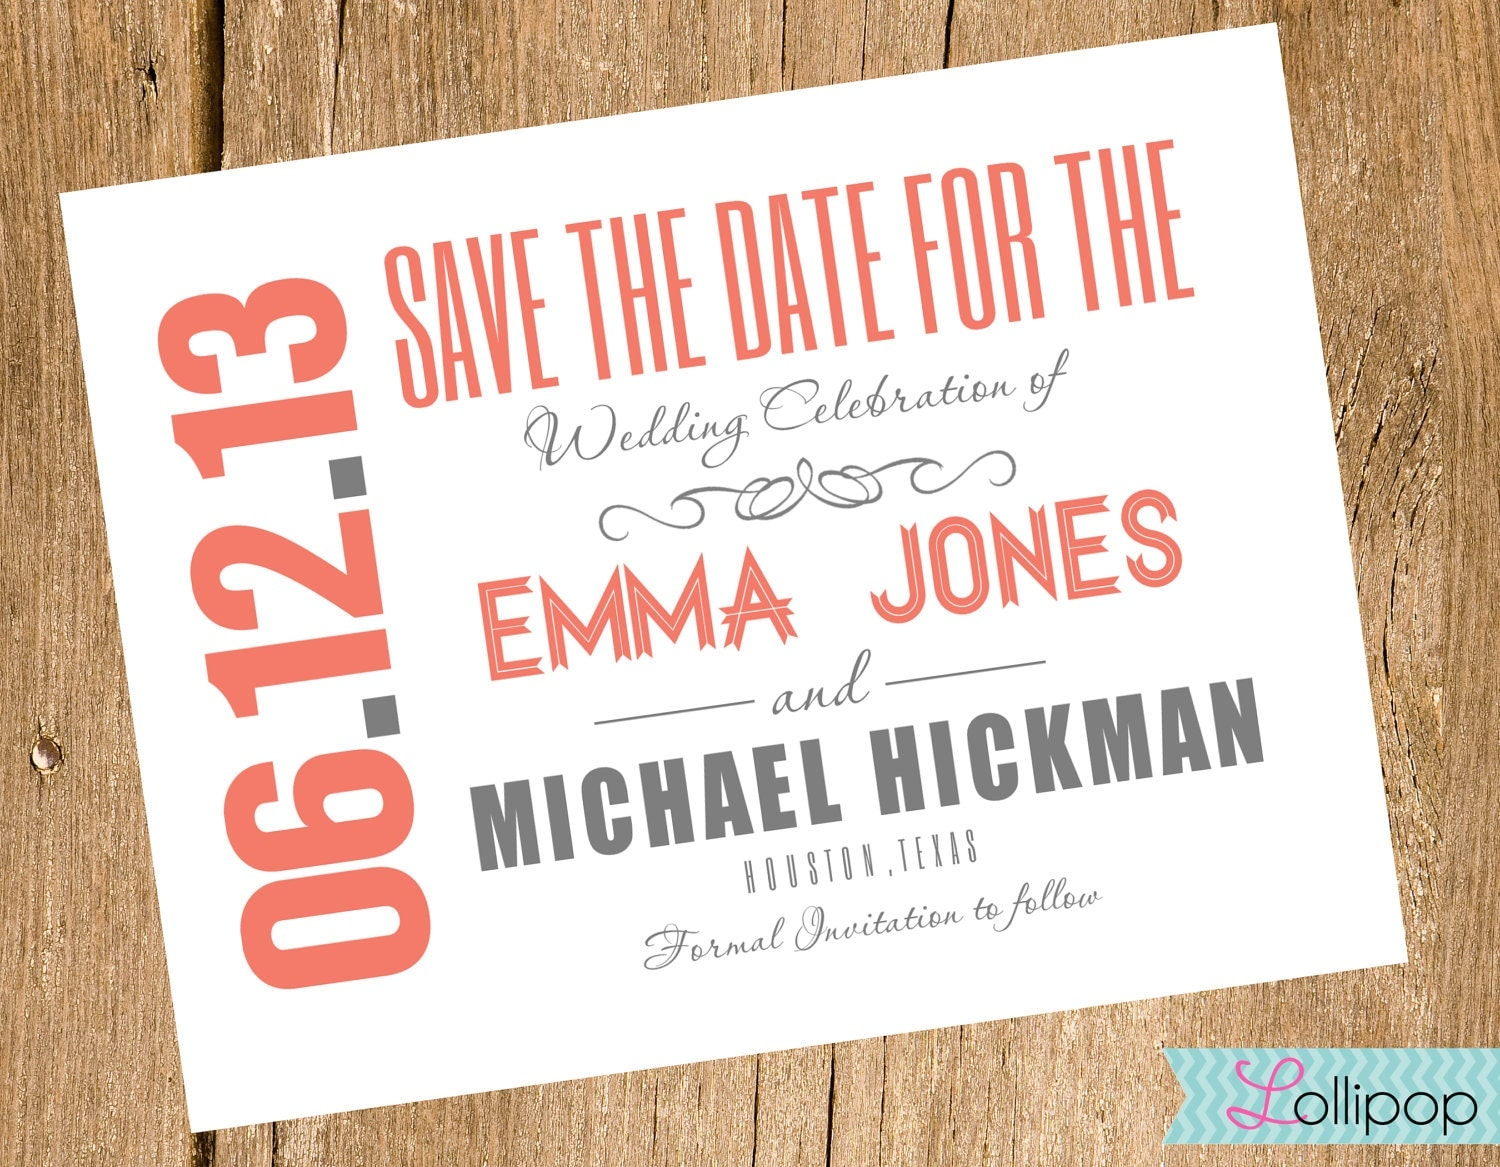 Save The Date Card Template Free] save the date card template for ...